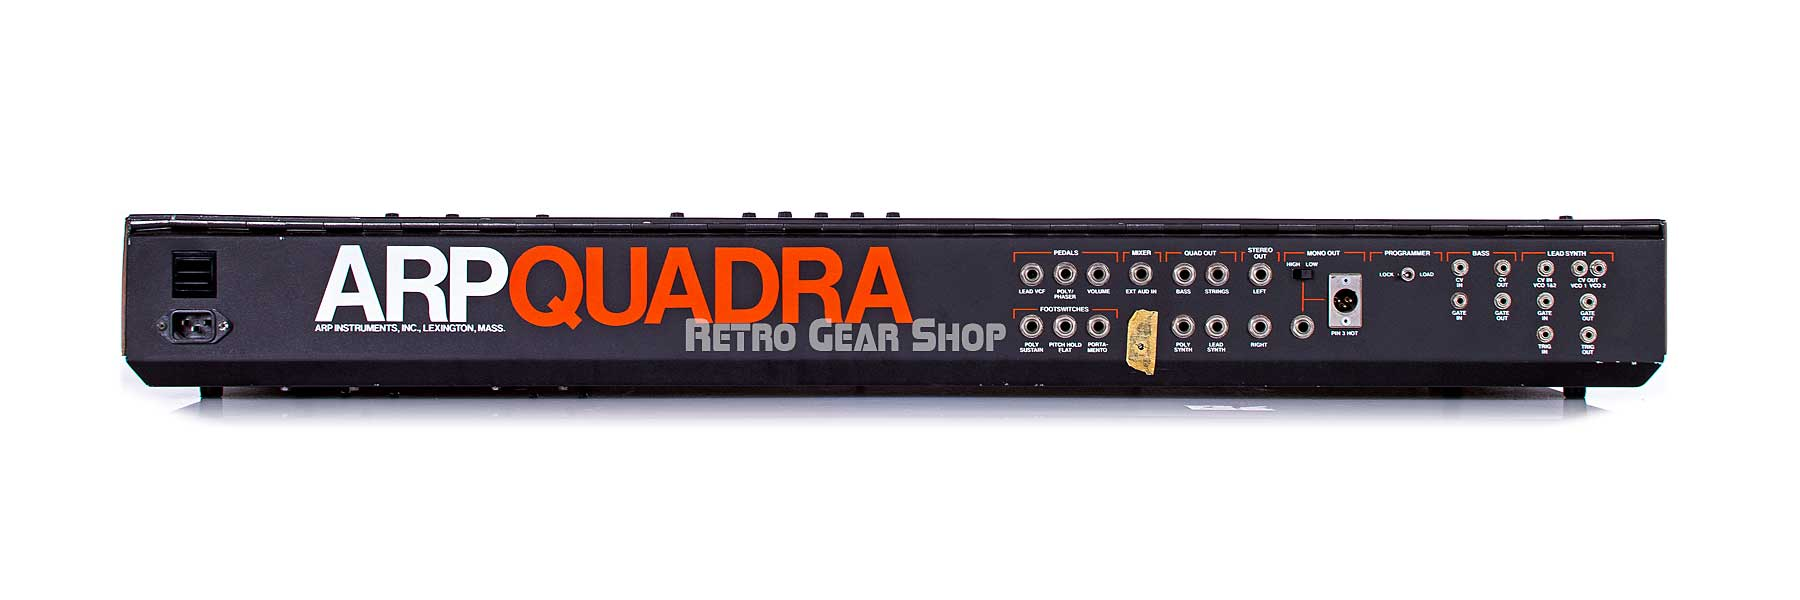 Arp Quadra Rear Connections